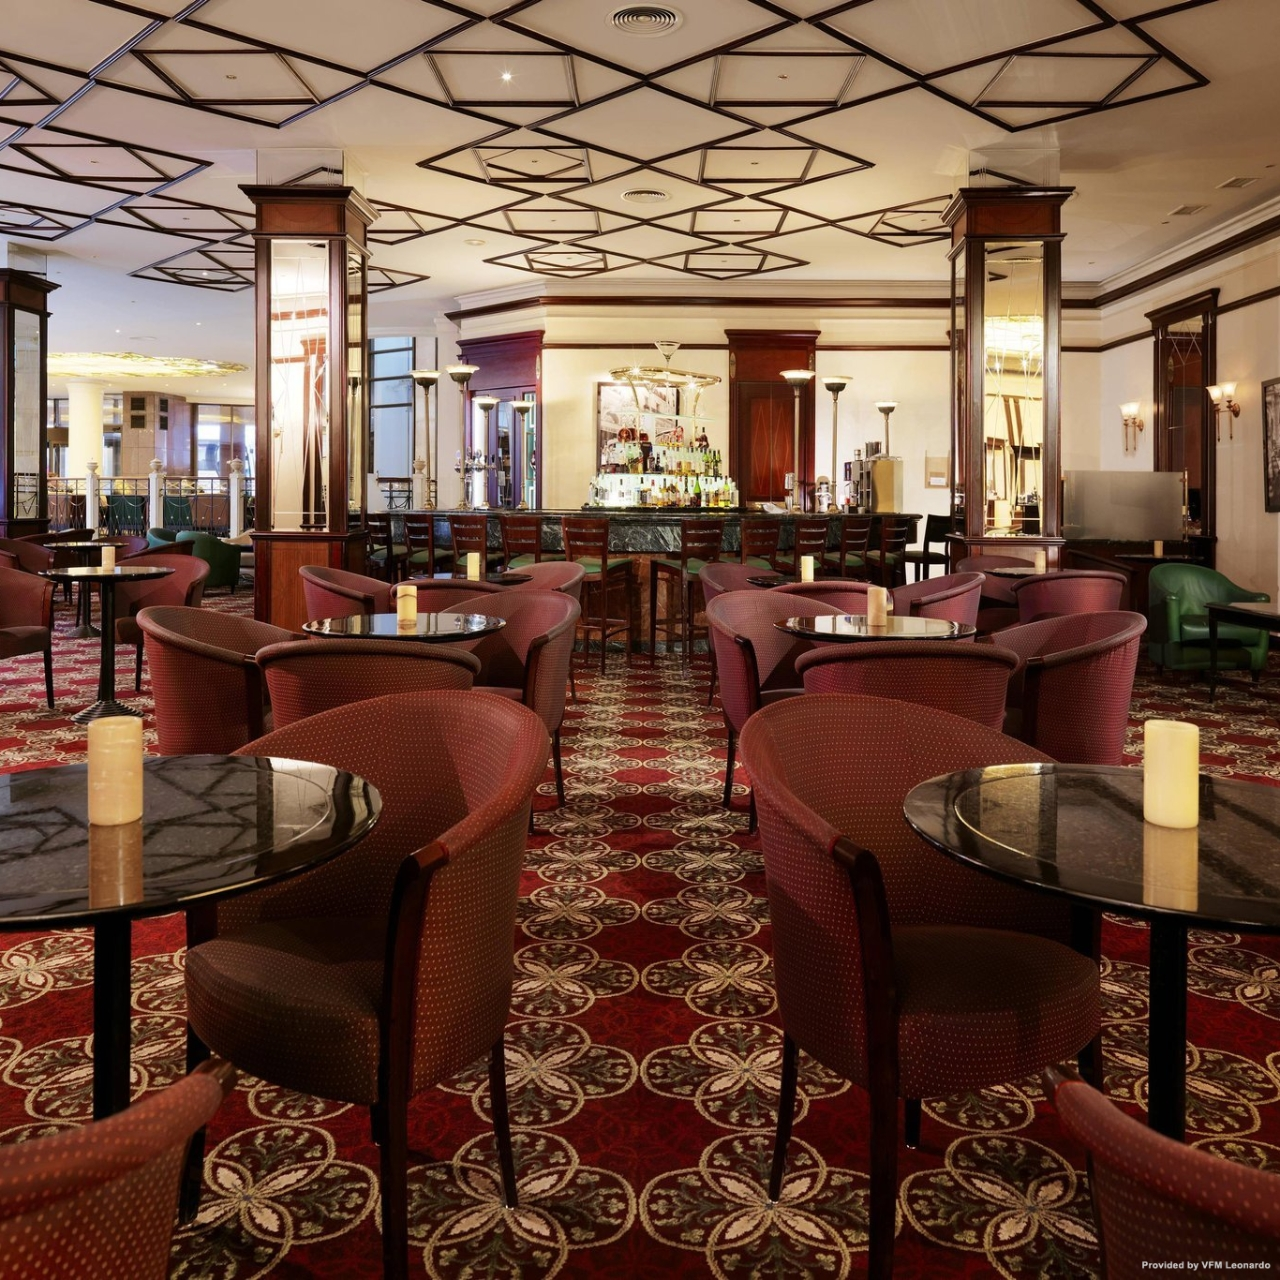 Moscow Marriott Grand Hotel Russia At Hrs With Free Services